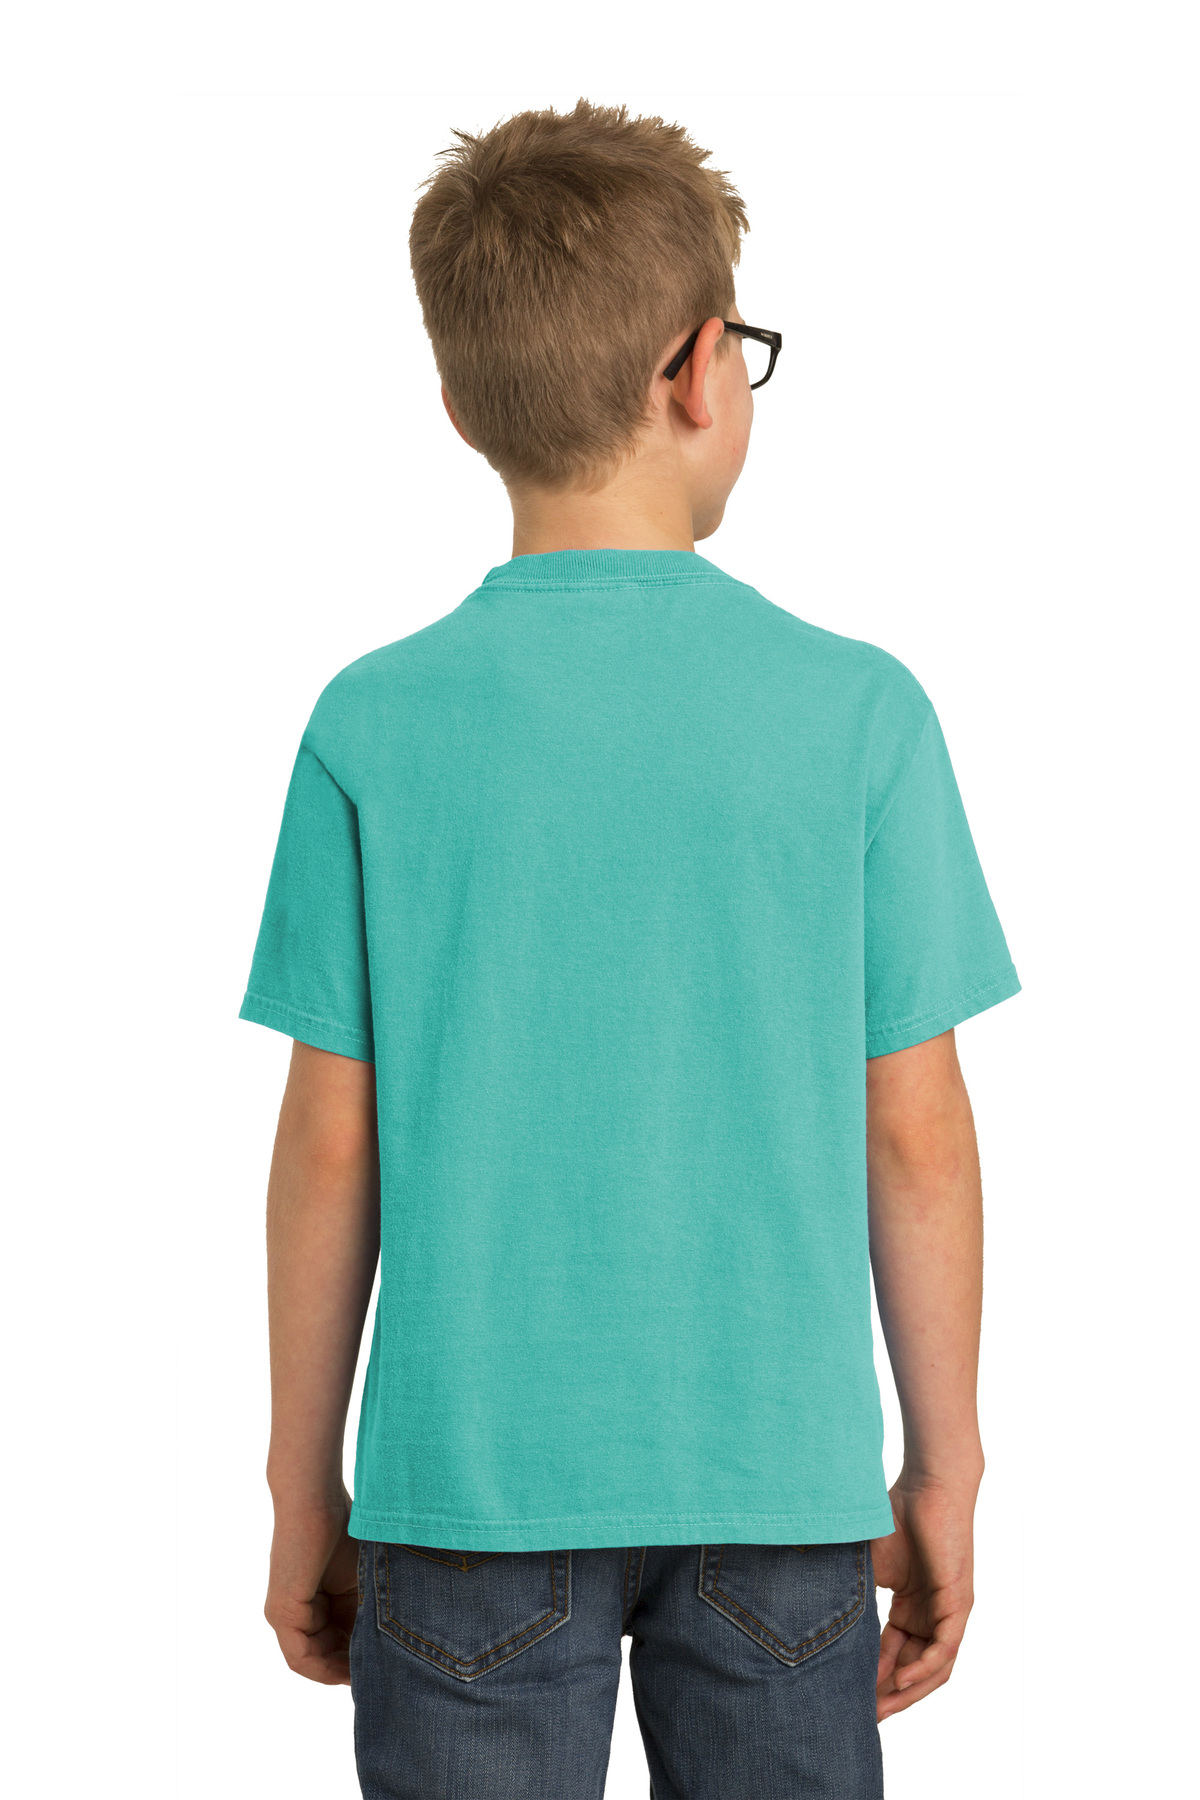 Blue Moon L Port /& Company PC099Y Youth Essential Pigment-Dyed Tee